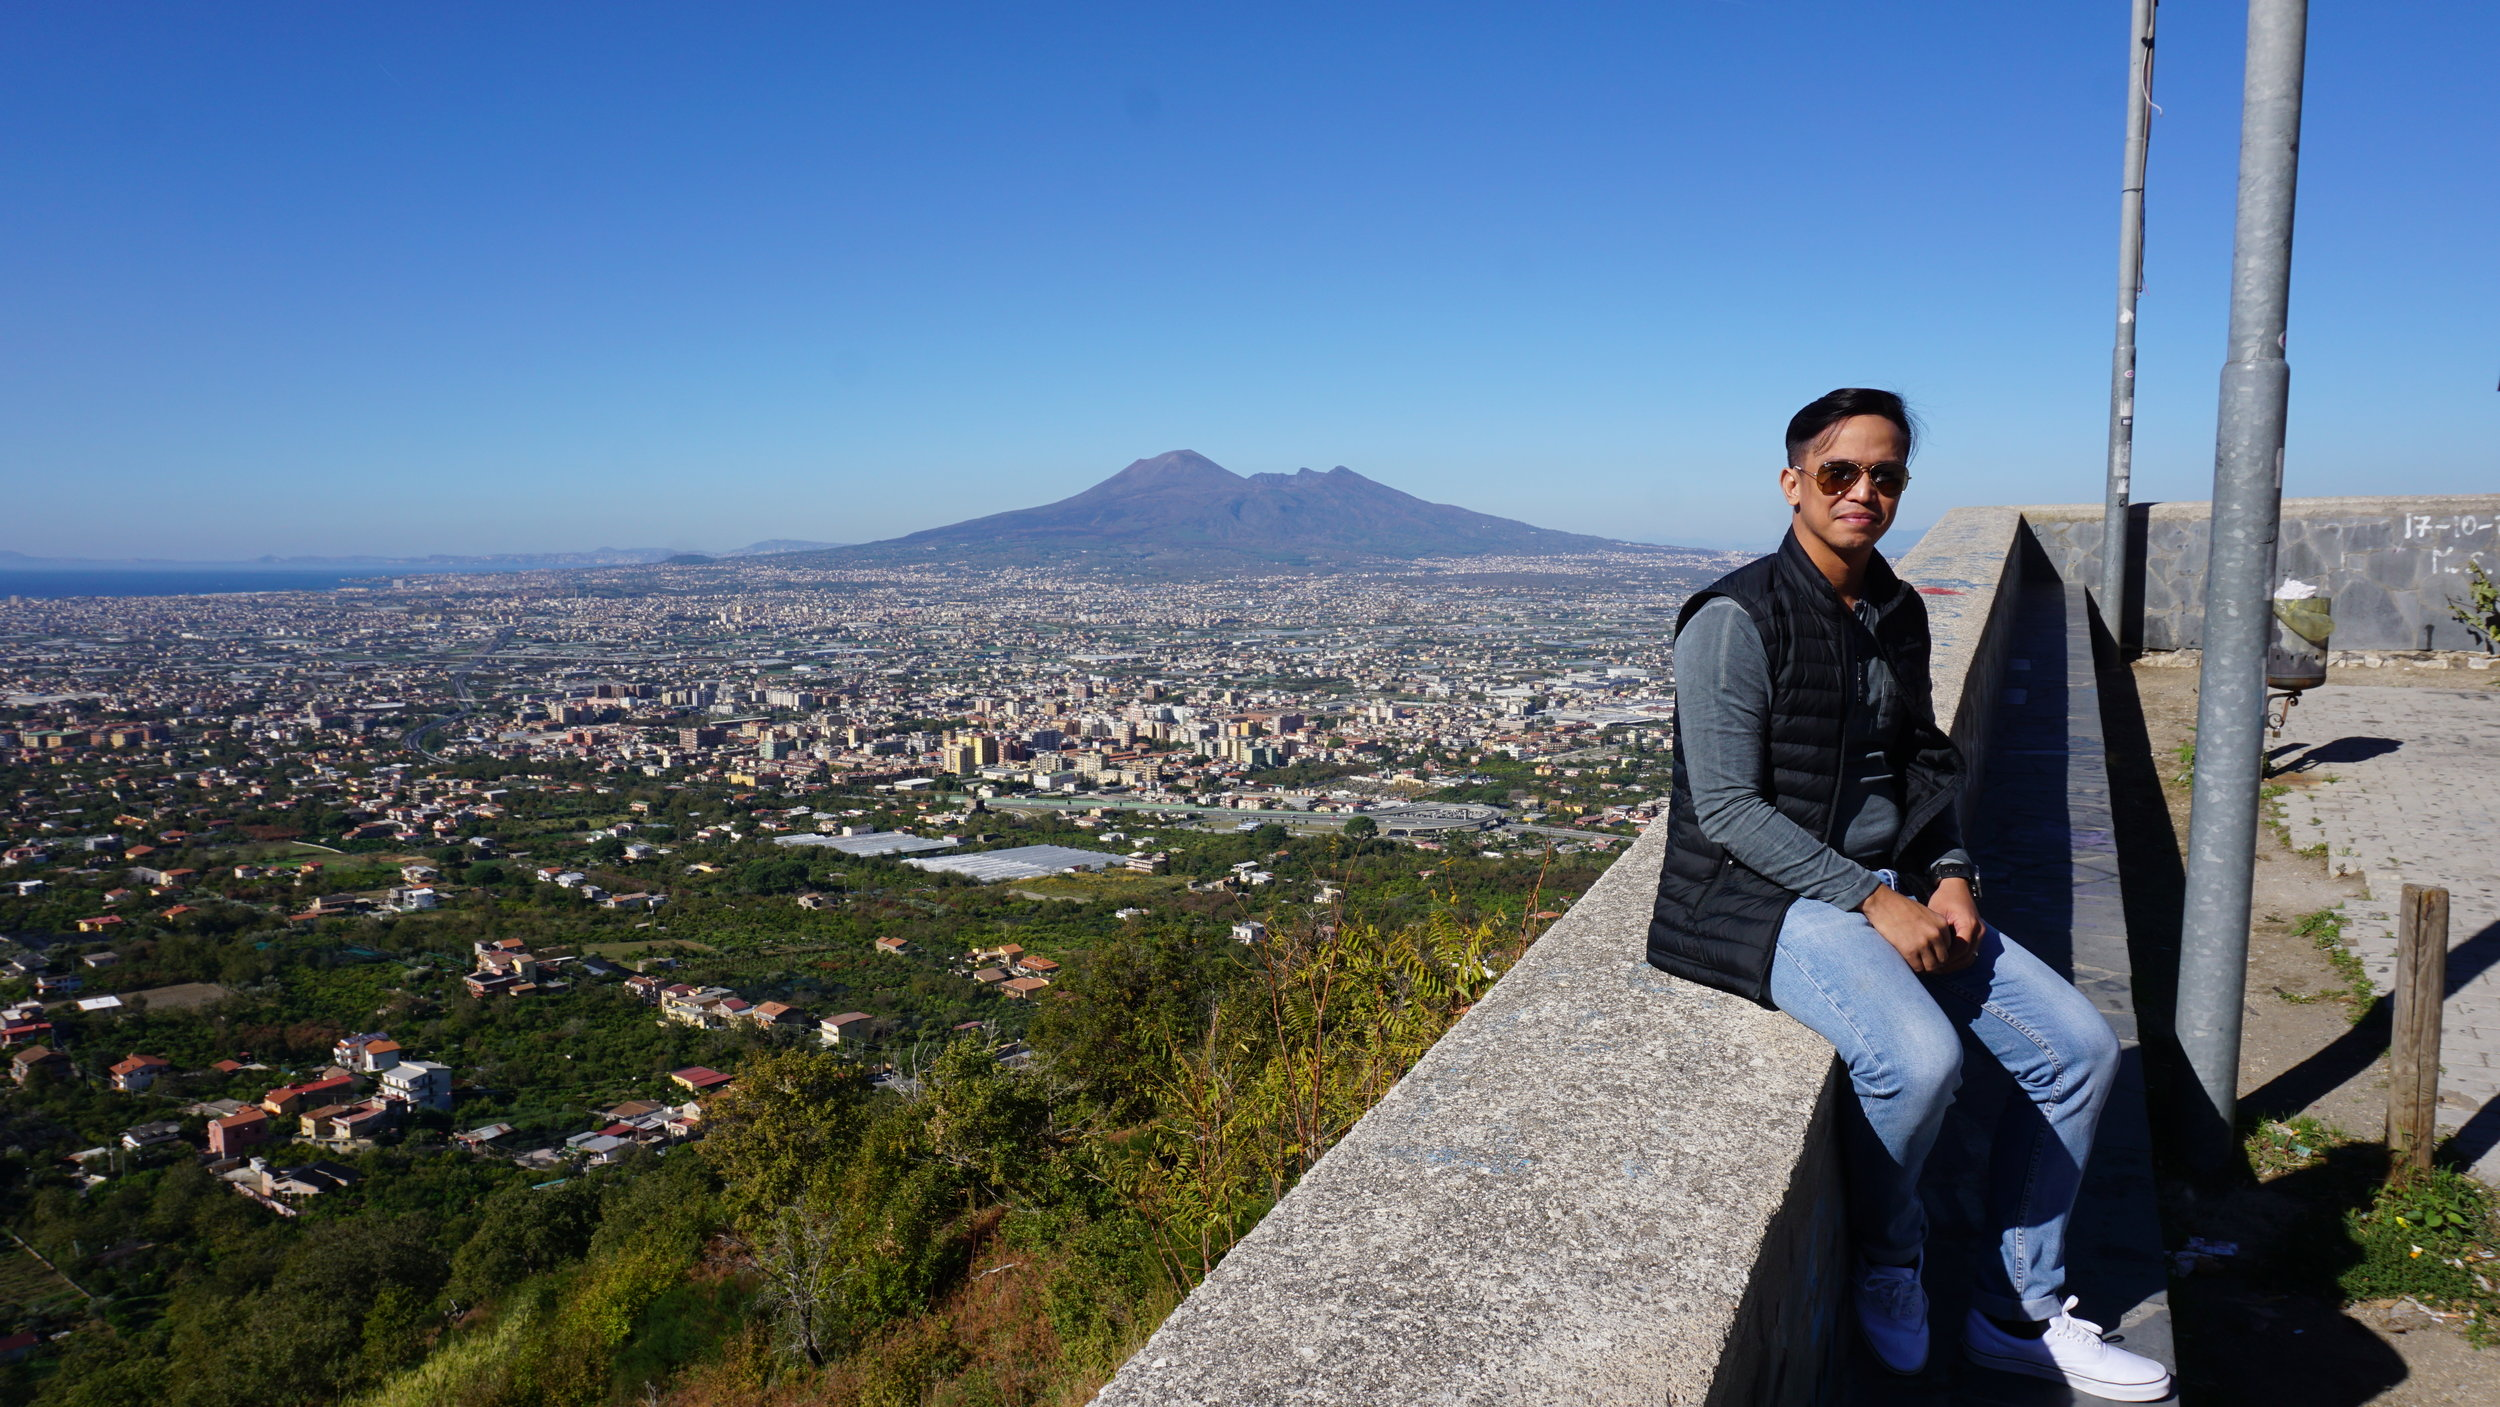 Stopped at this beautiful spot, Mt. Vesuvius in the distance.